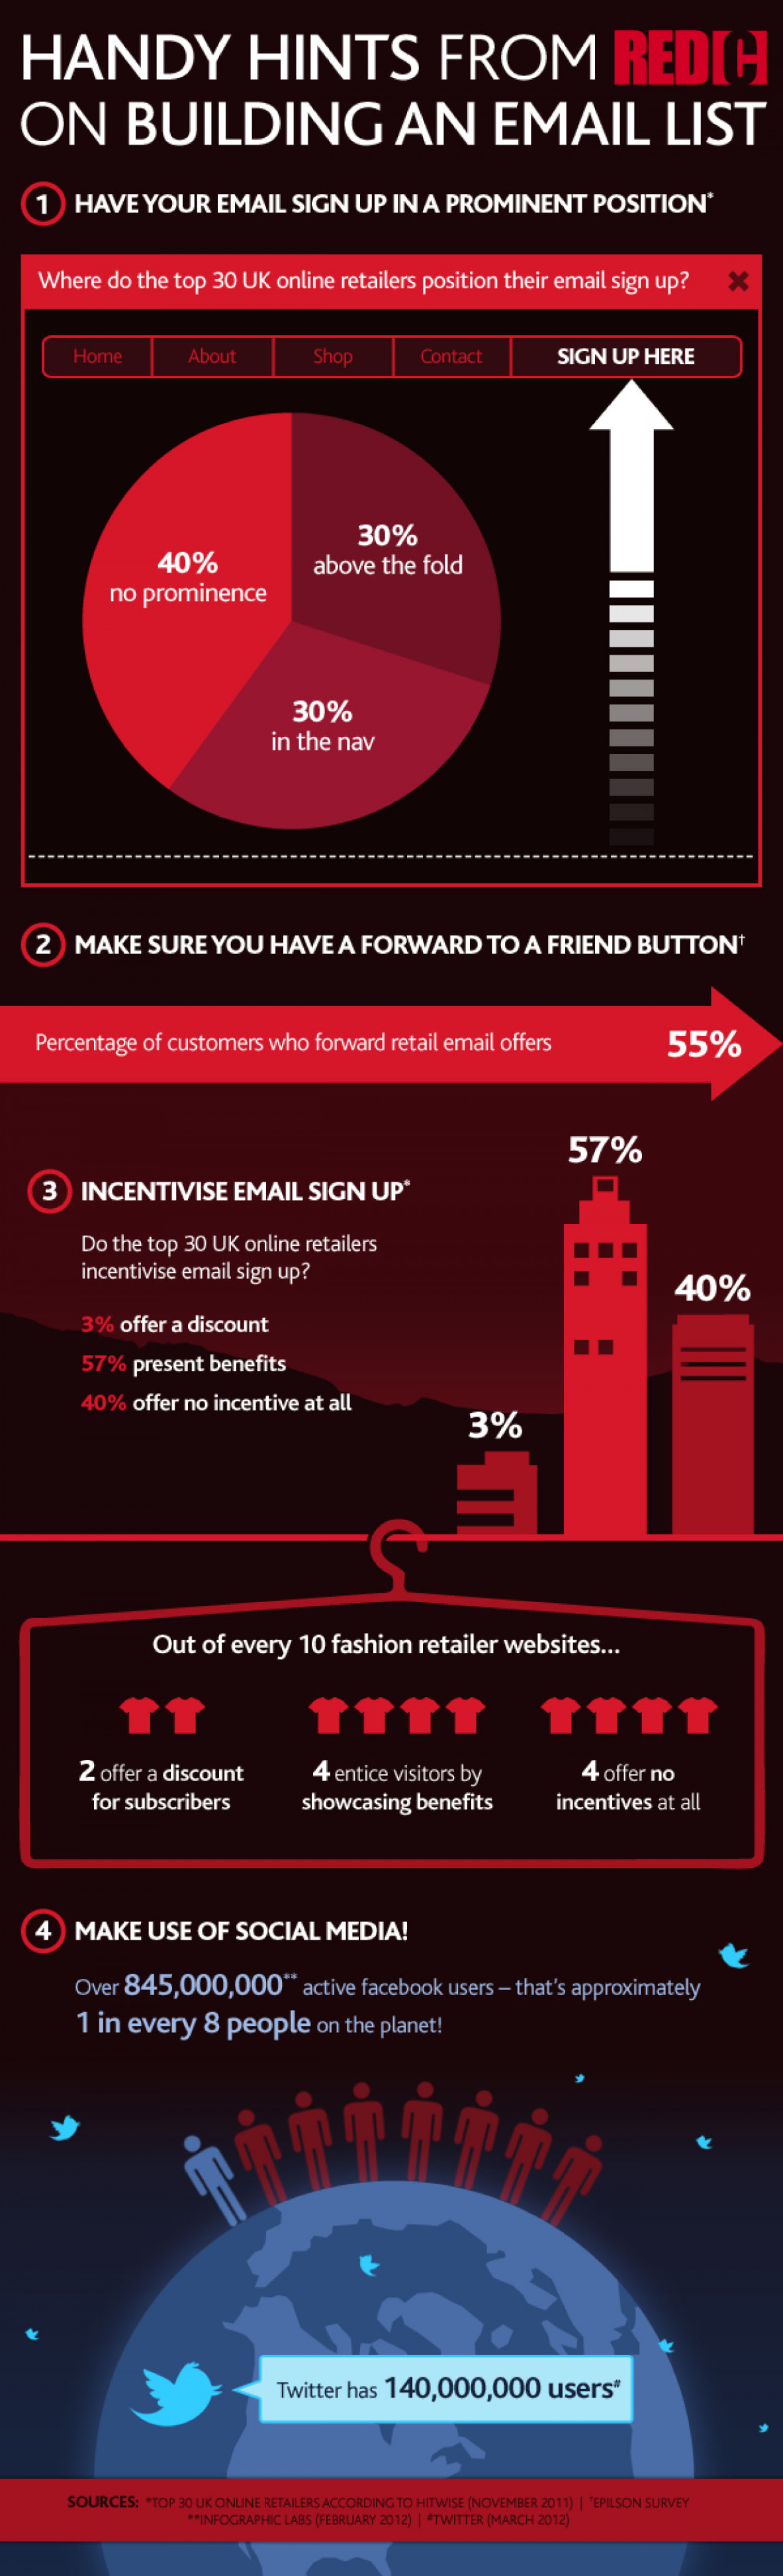 Handy hints on building an email list Infographic